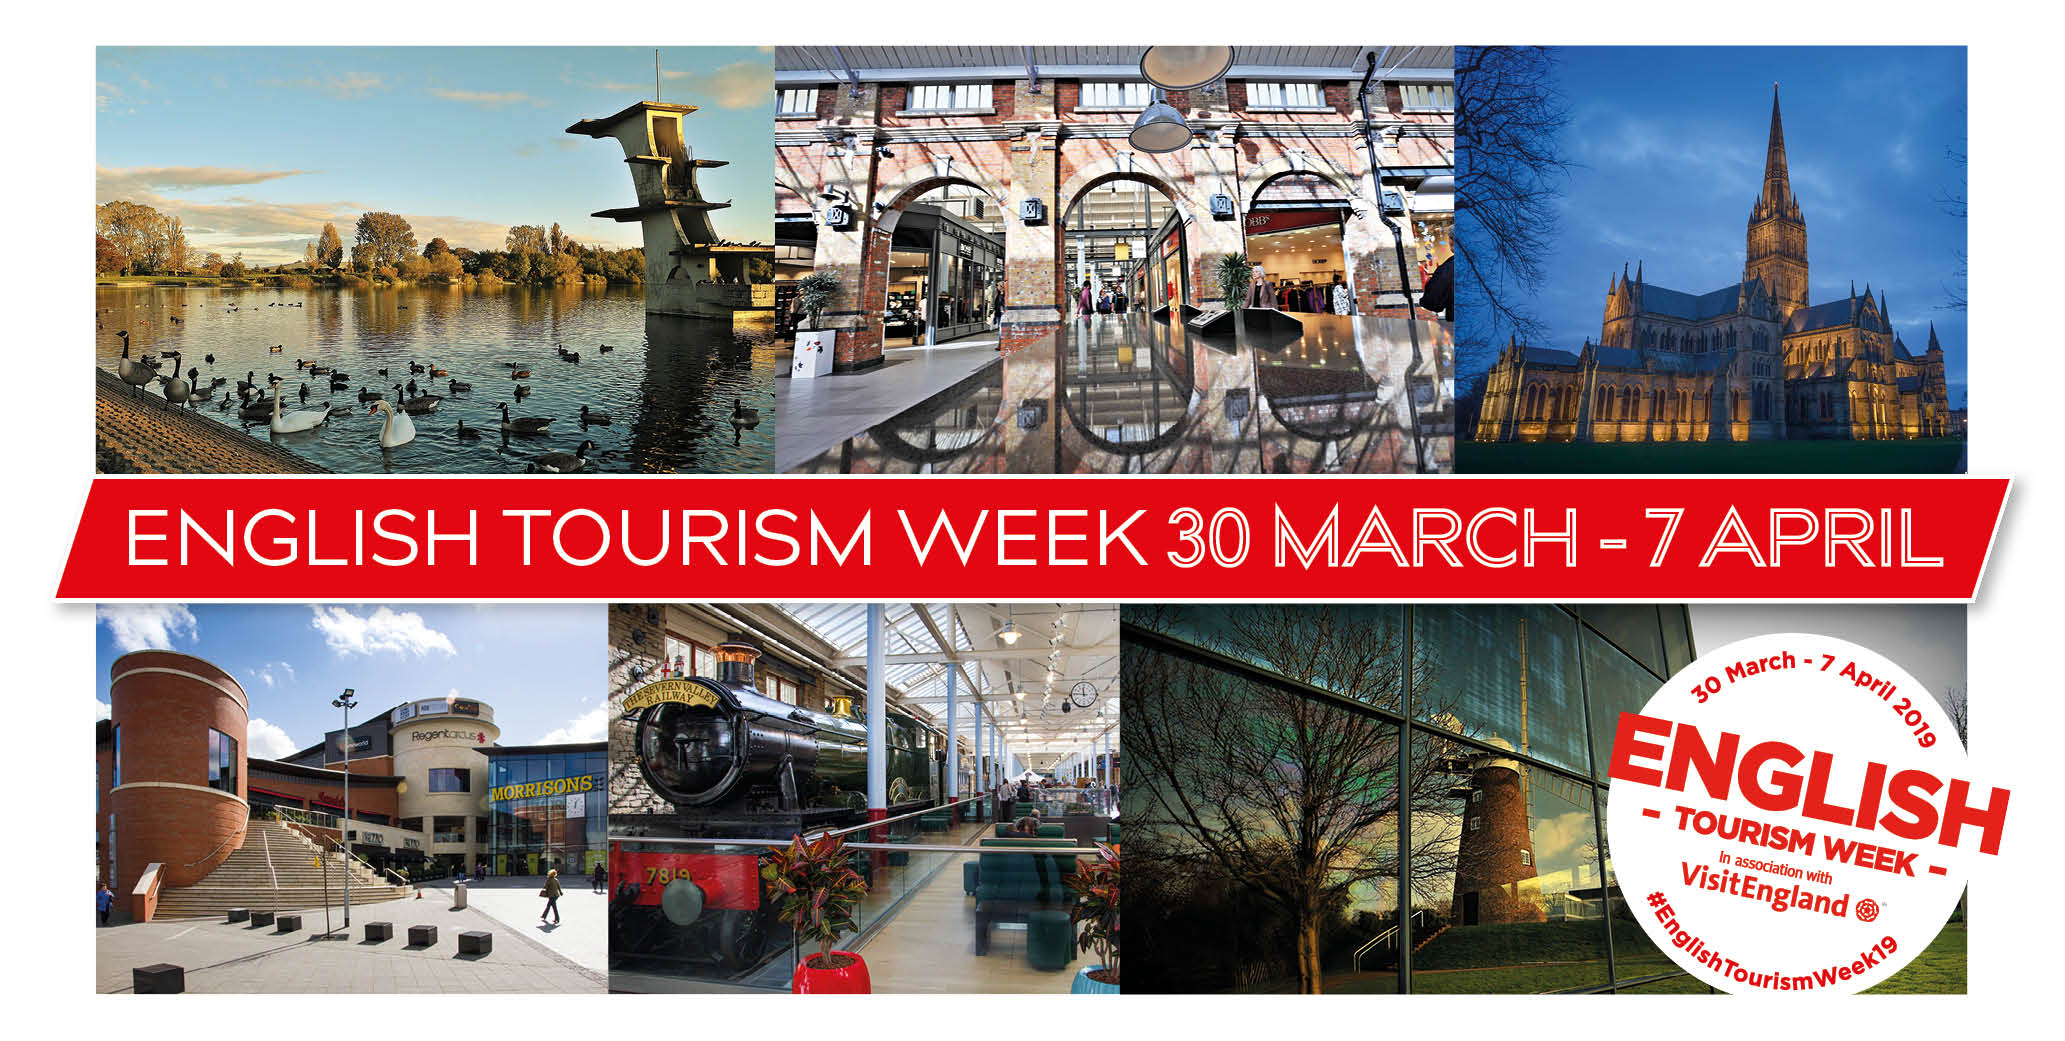 English tourism week - 30th March - 7th April